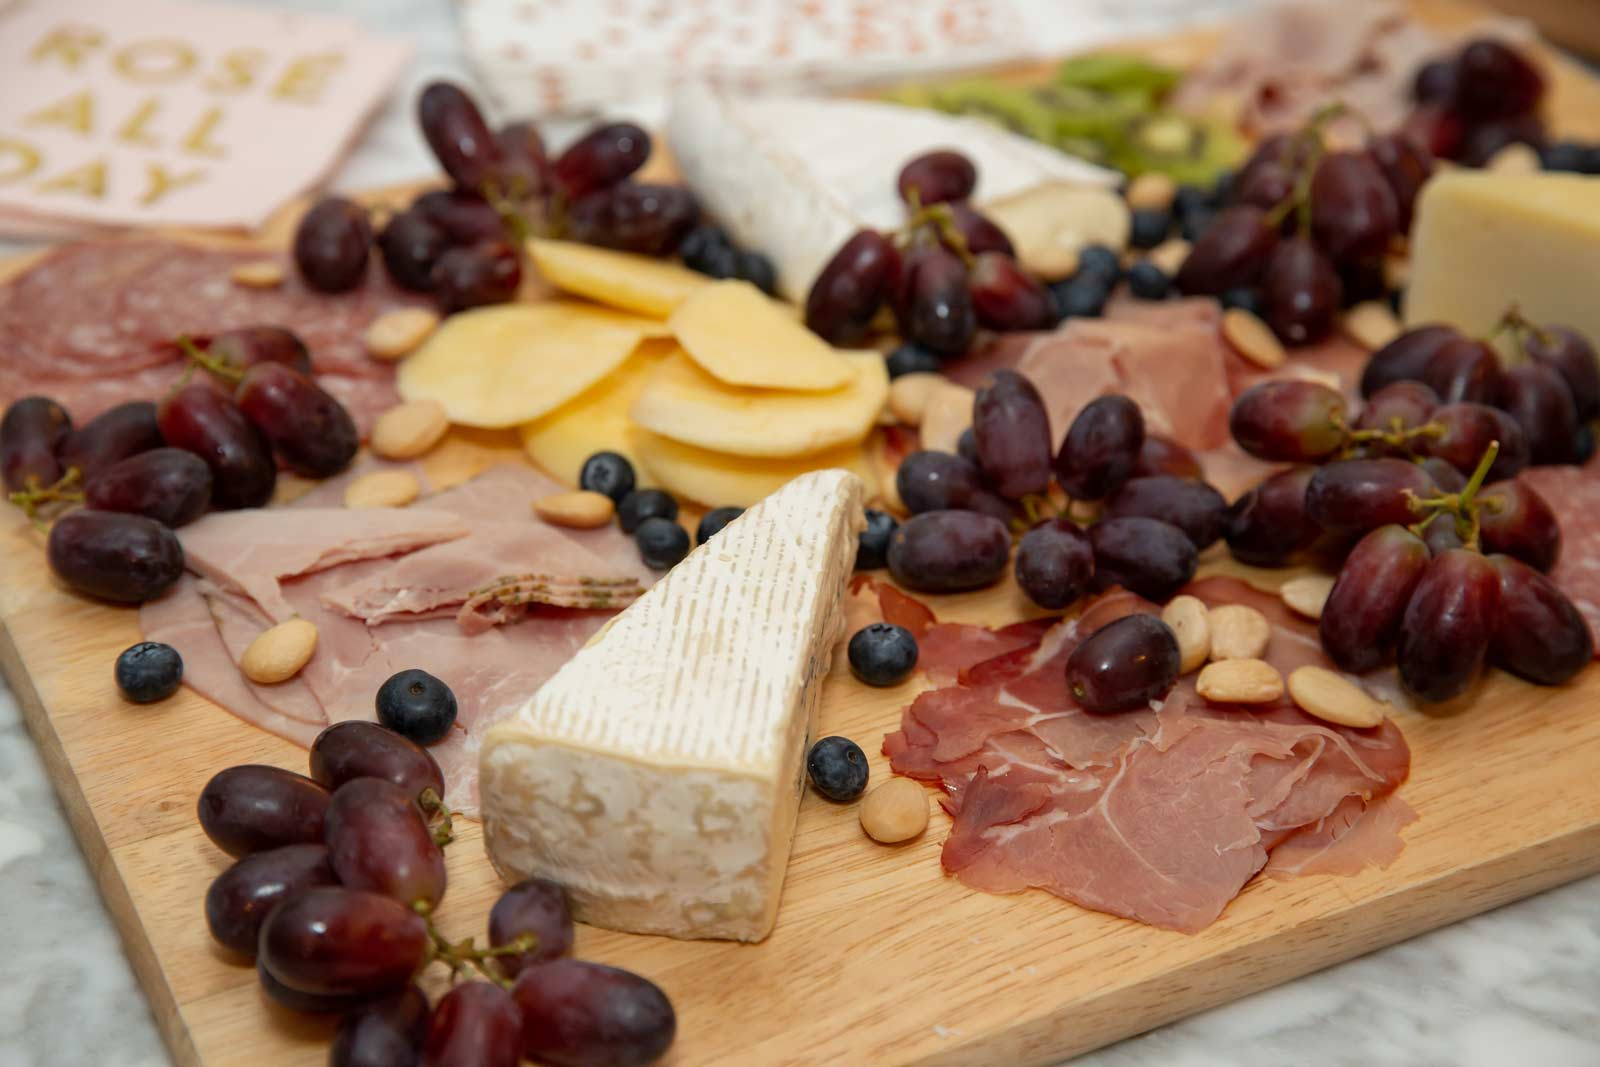 Delicious fruit, nut, meat and cheese platter created by Gina's husband